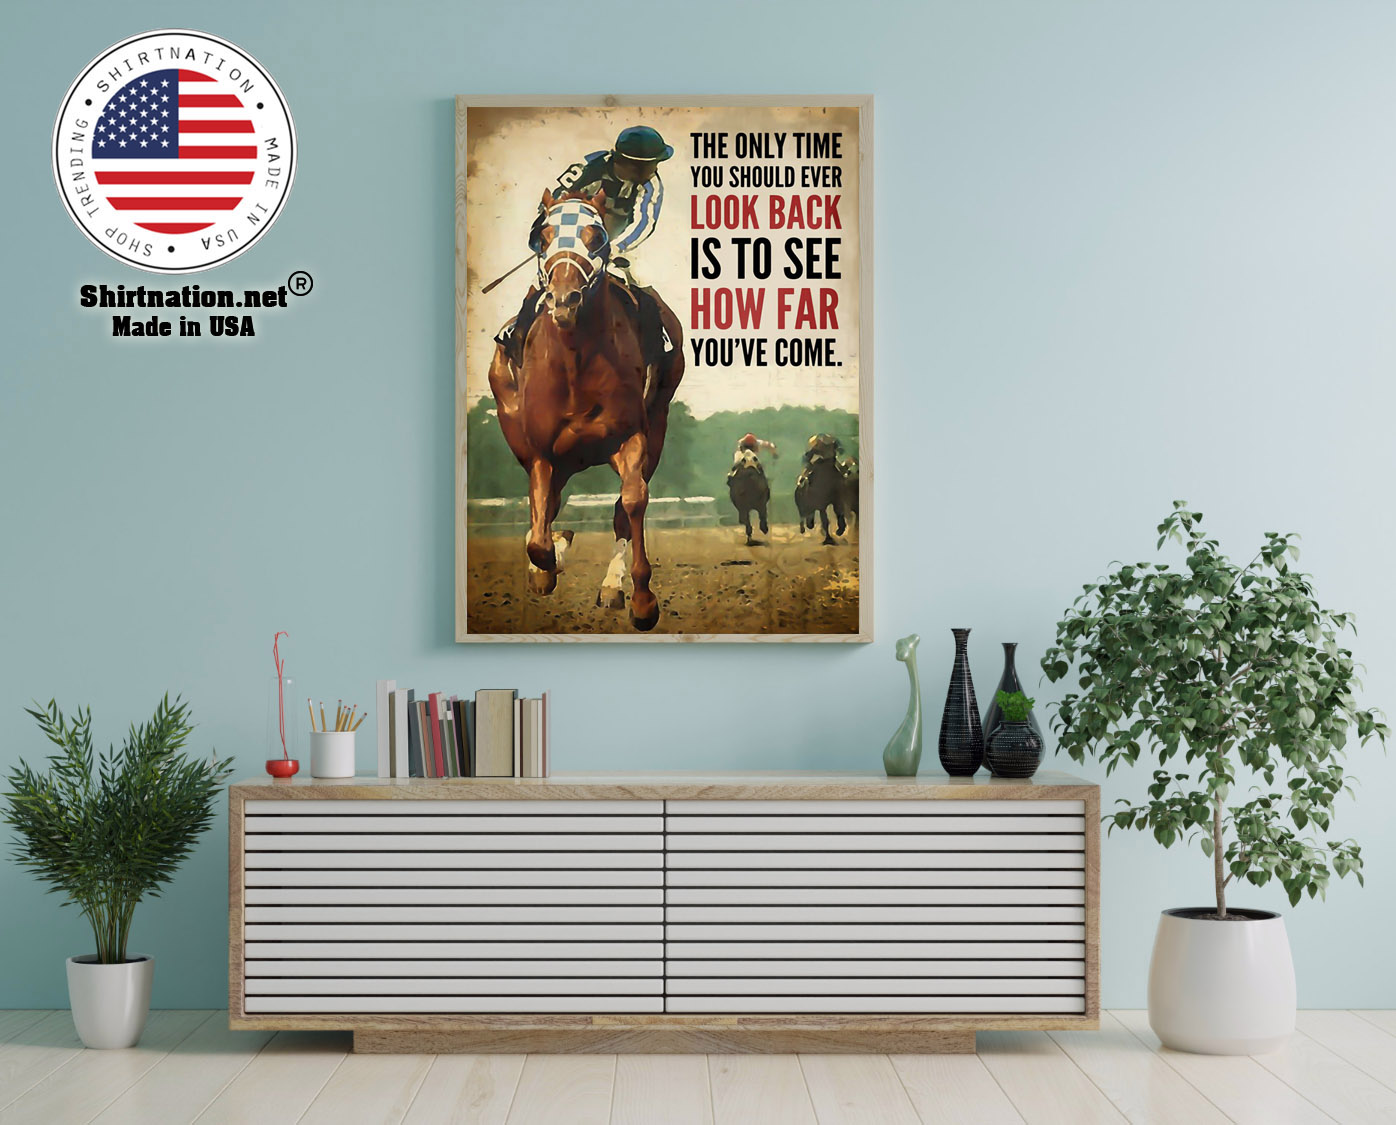 Racing horse The only time you should ever look back is to see how far youve come poster 16